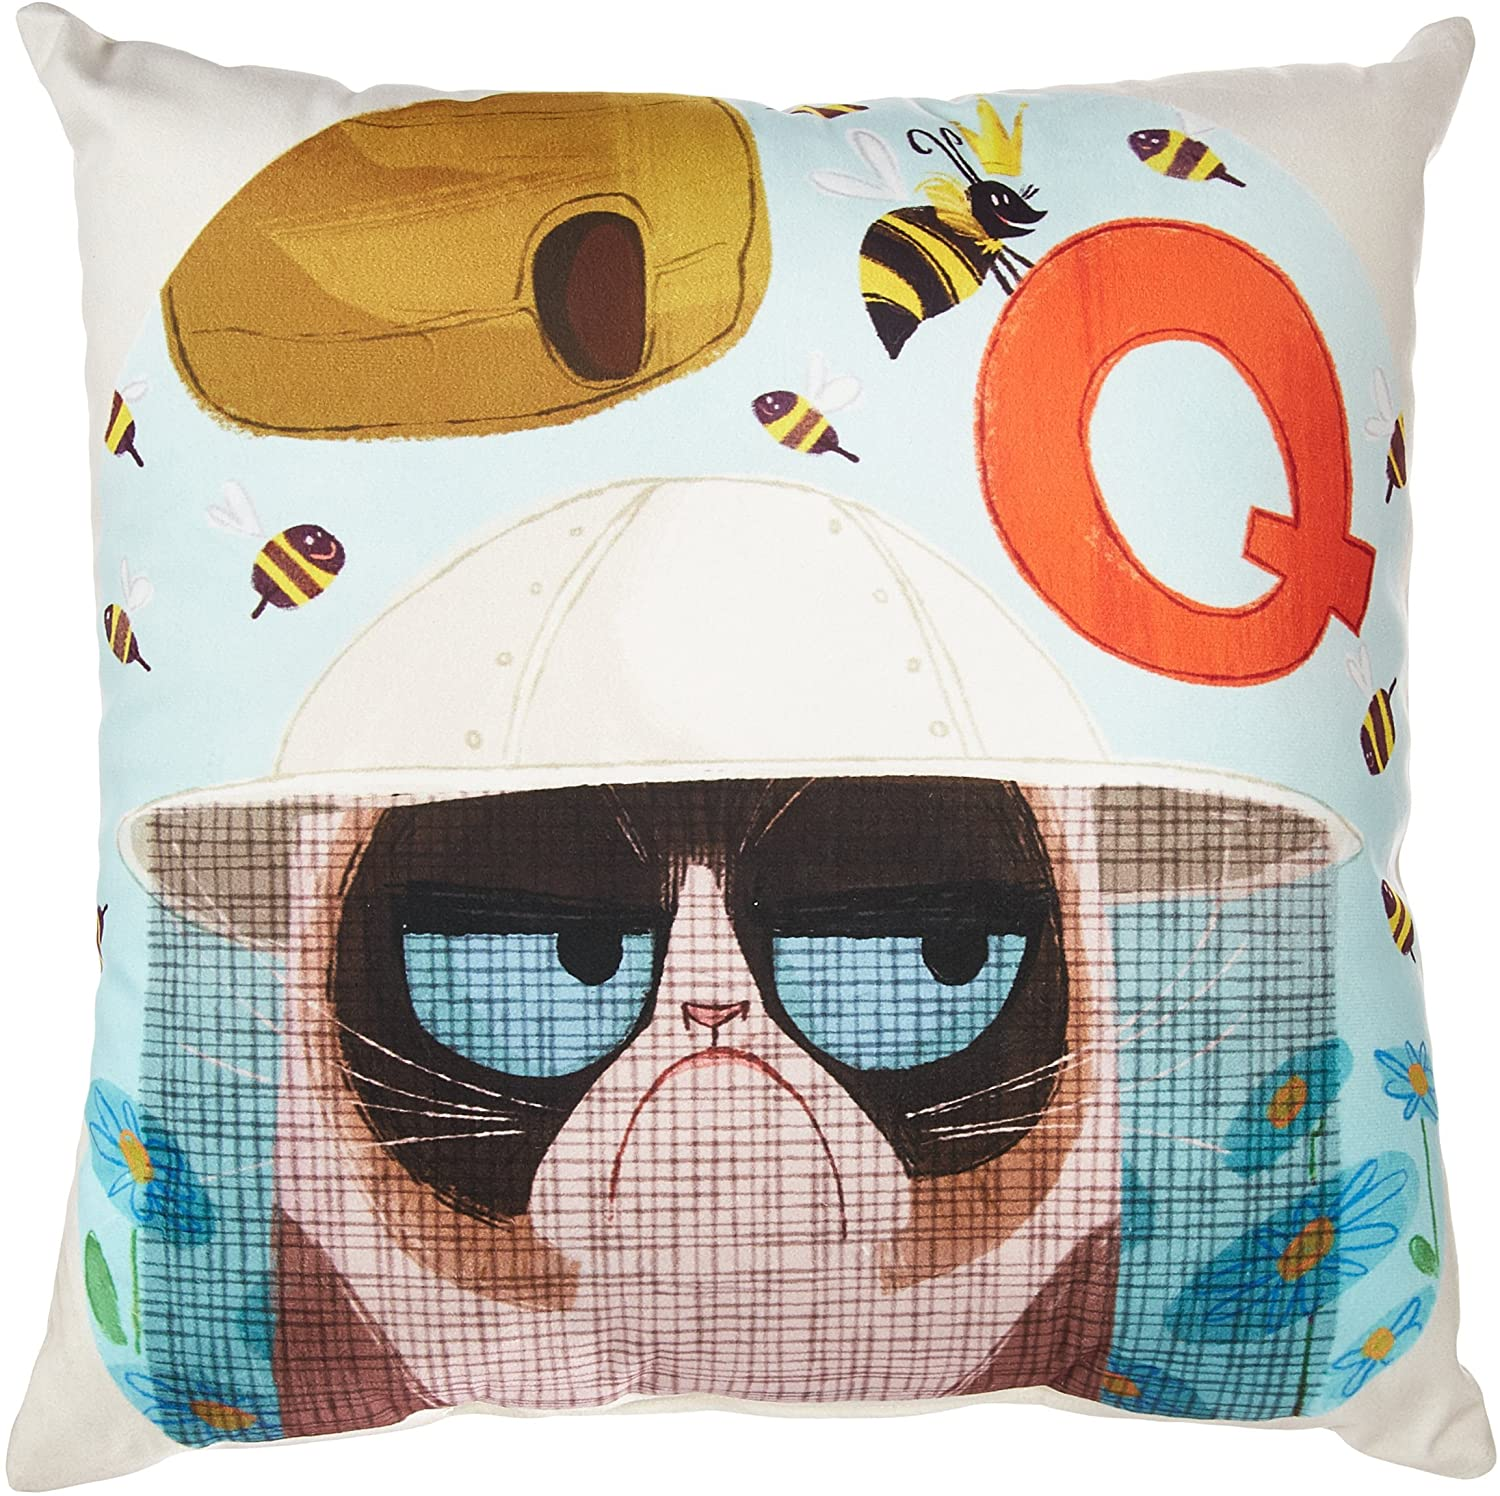 LiLiPi Q is for Queen Bee Decorative Accent Throw Pillow